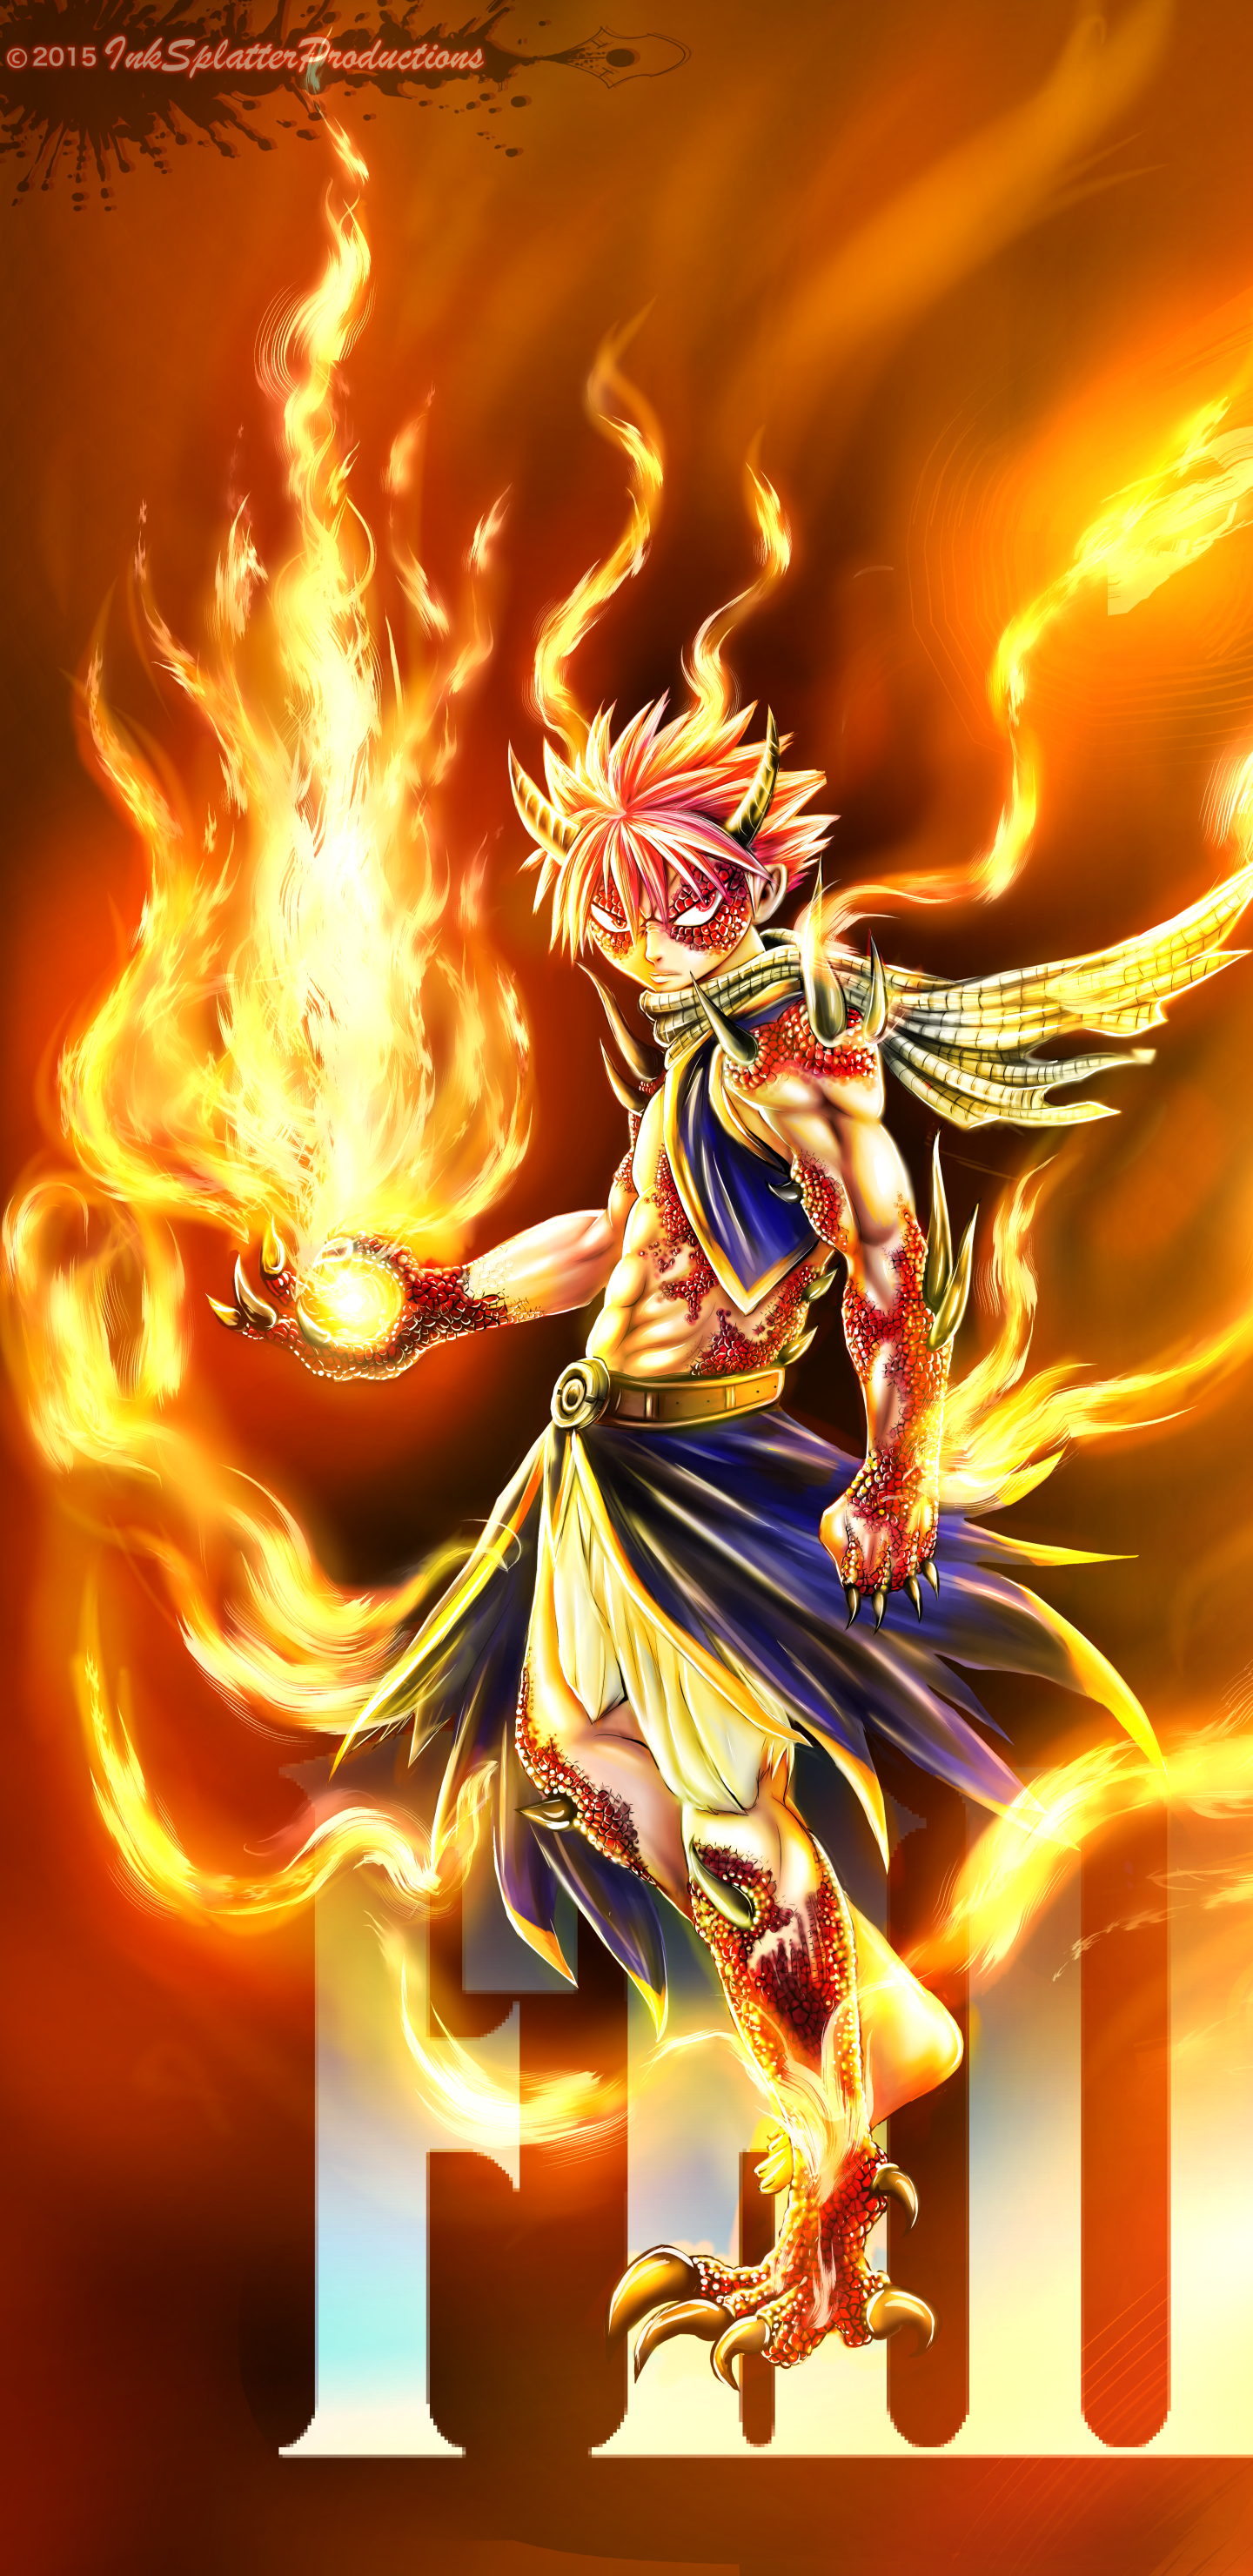 Anime Fairy Tail Movie 2 Dragon Cry 1440x2960 Wallpaper Id